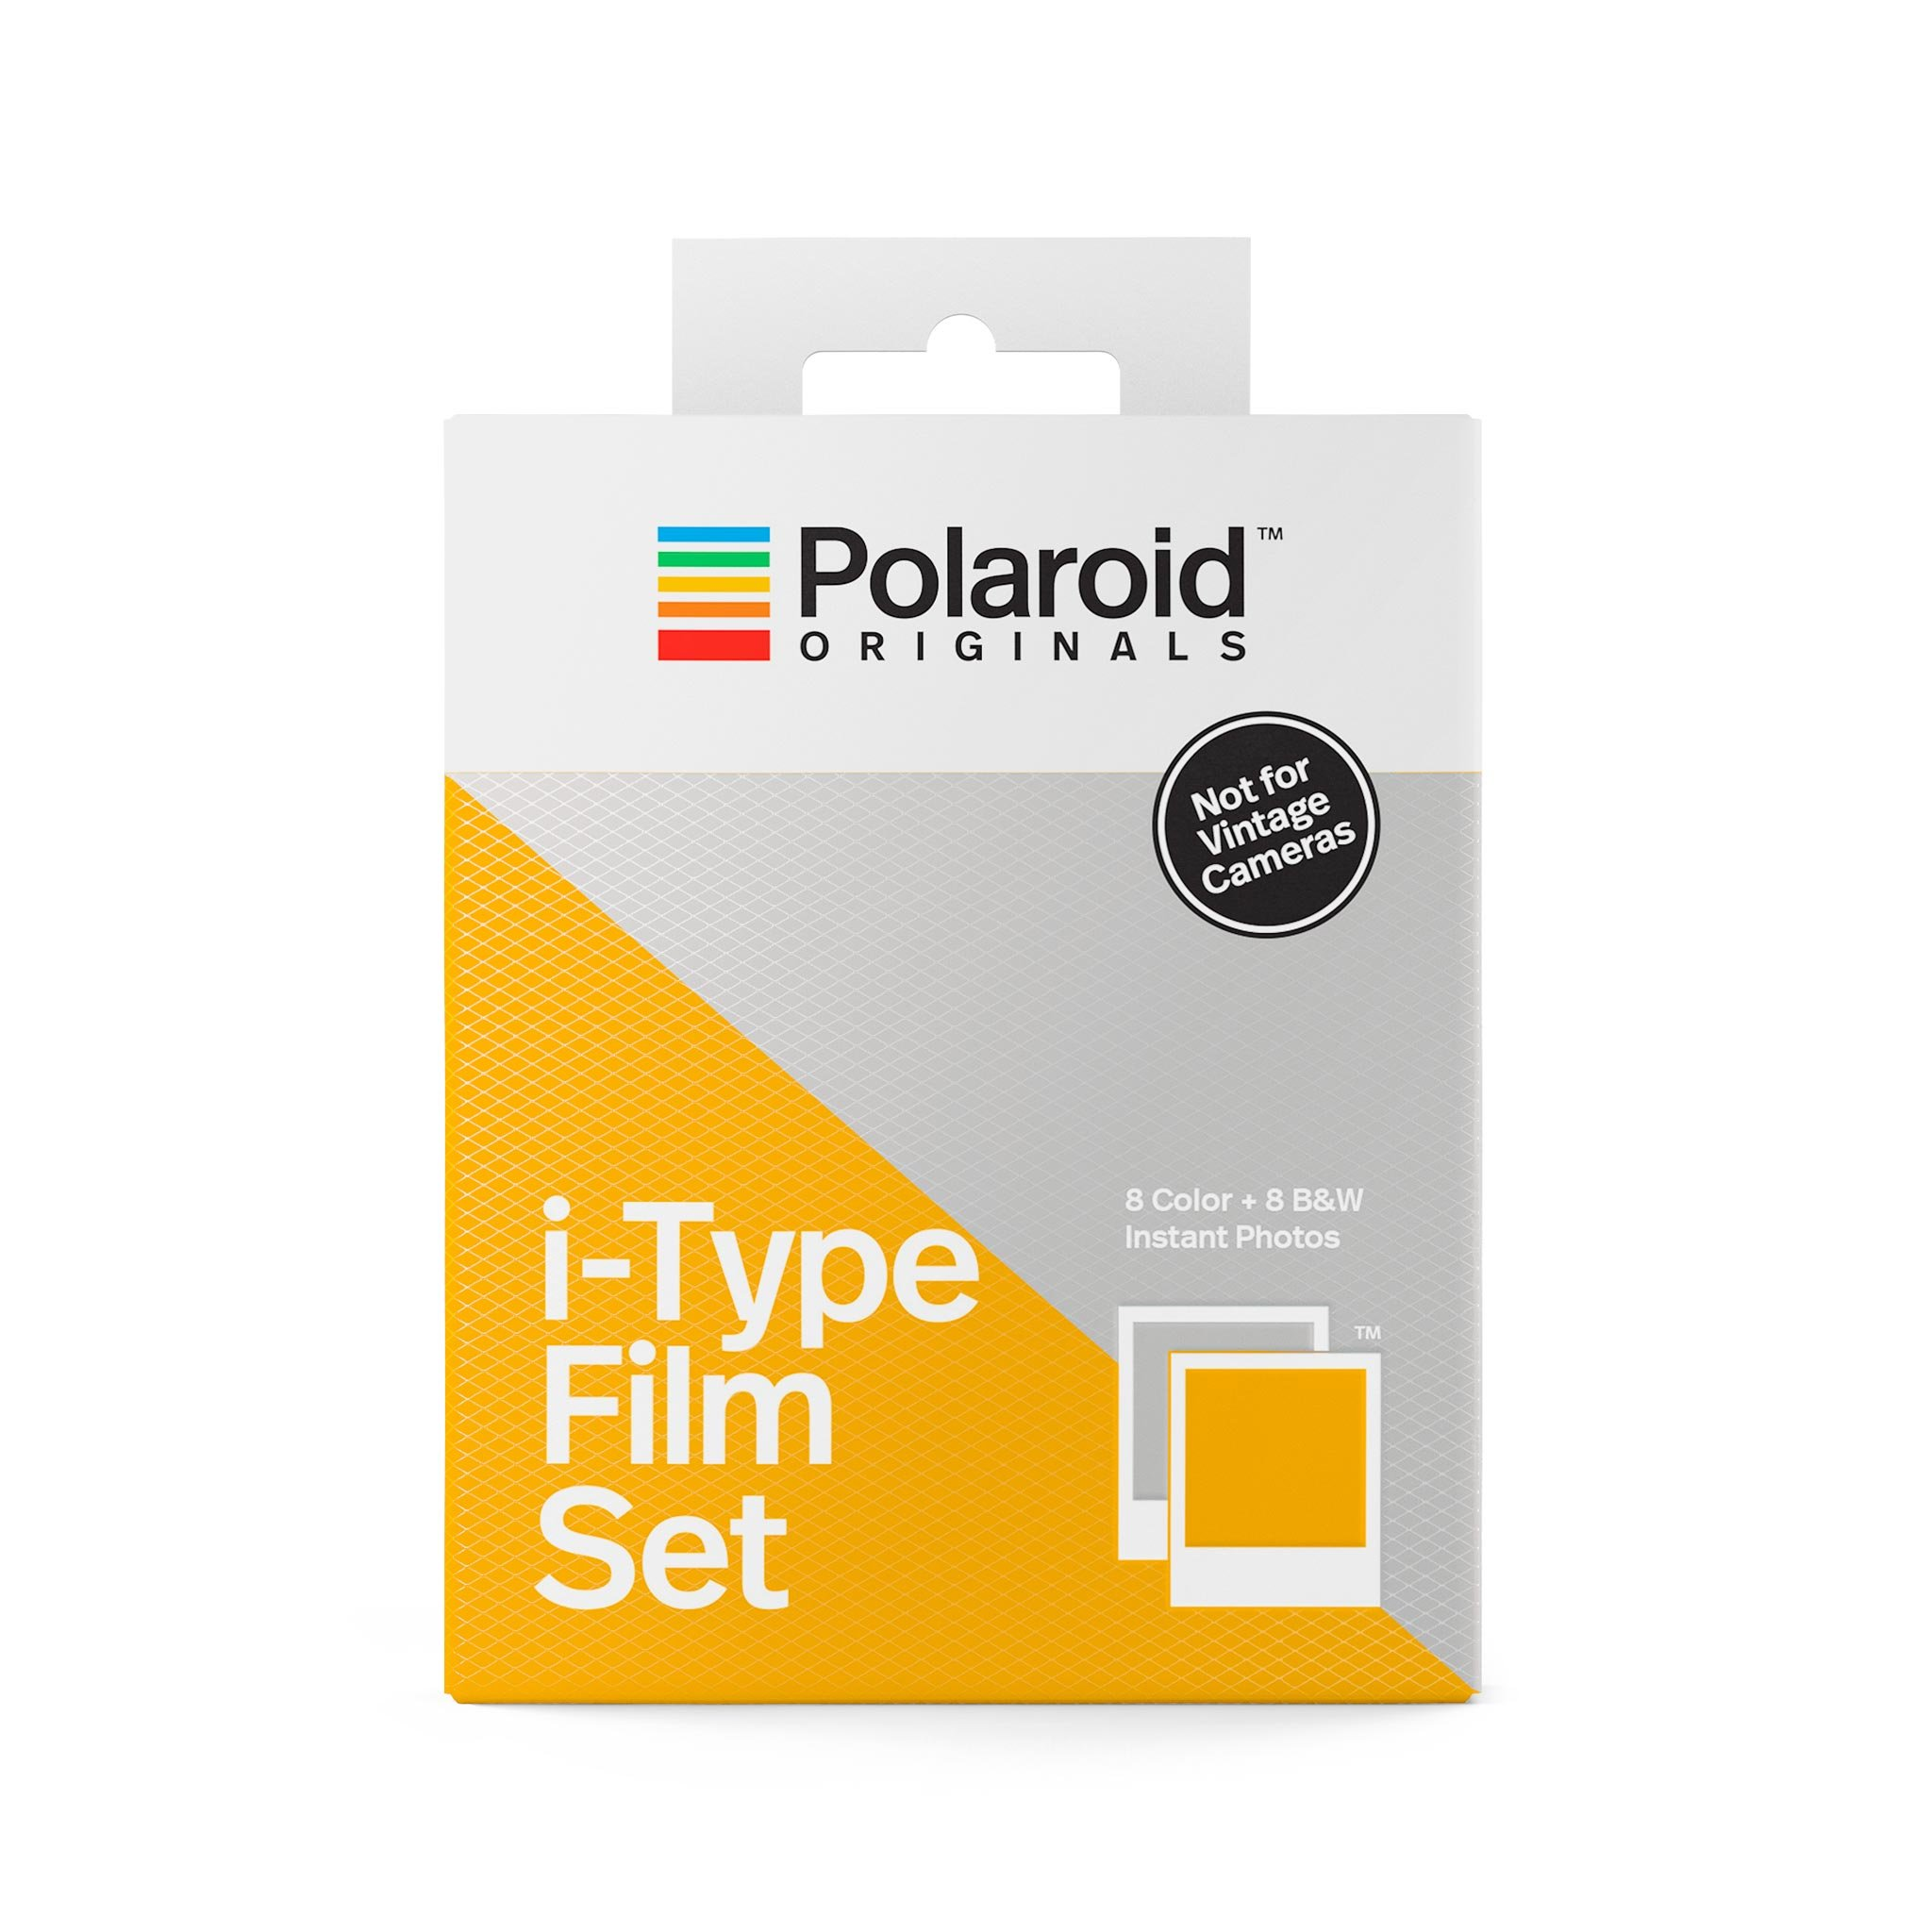 Polaroid Originals i-Type Two-Pack Film Set (1 Color + 1 B&W)